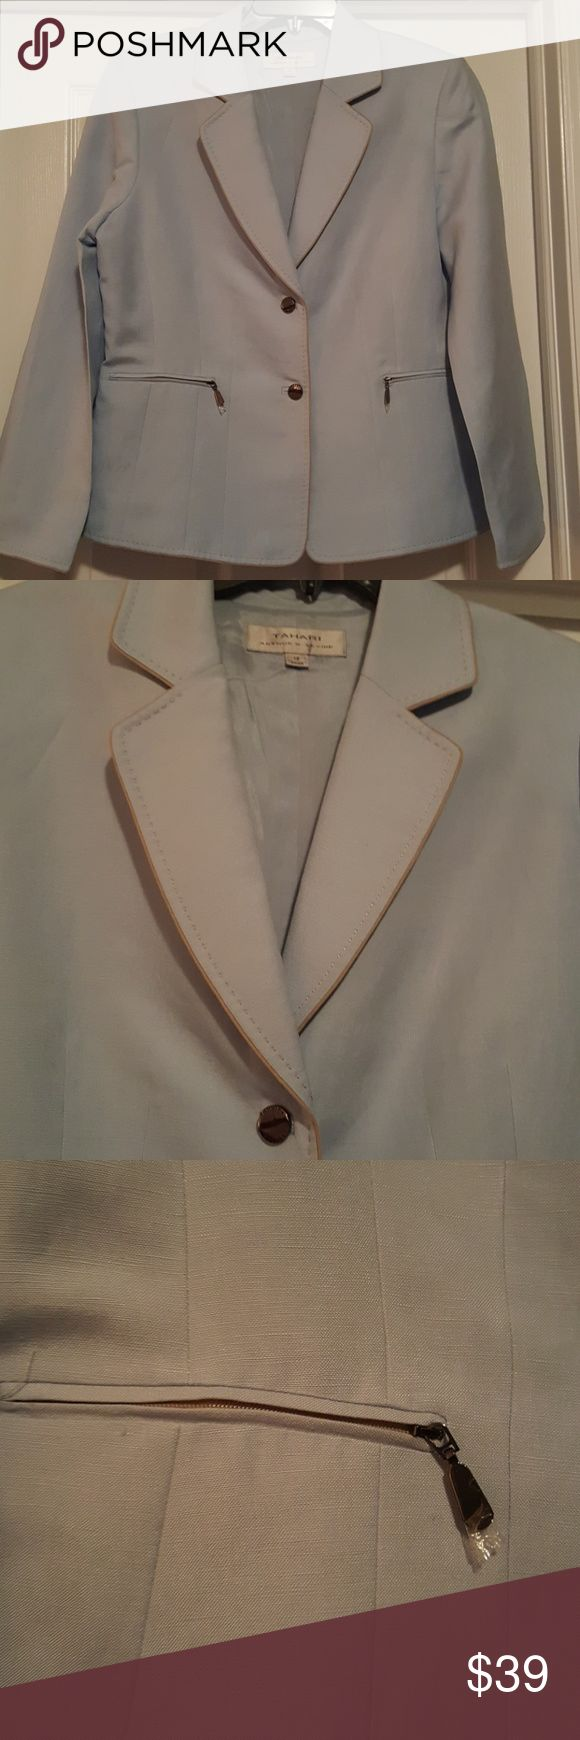 """NWOT Tahari Light Blue Blazer w/ khaki color trim This has never been worn.  This is gorgeous. Arm length 24 1/2"""" long  jacket  length 25 1/2"""" long. across the chest 23"""" wide. Tahari Jackets & Coats Blazers"""